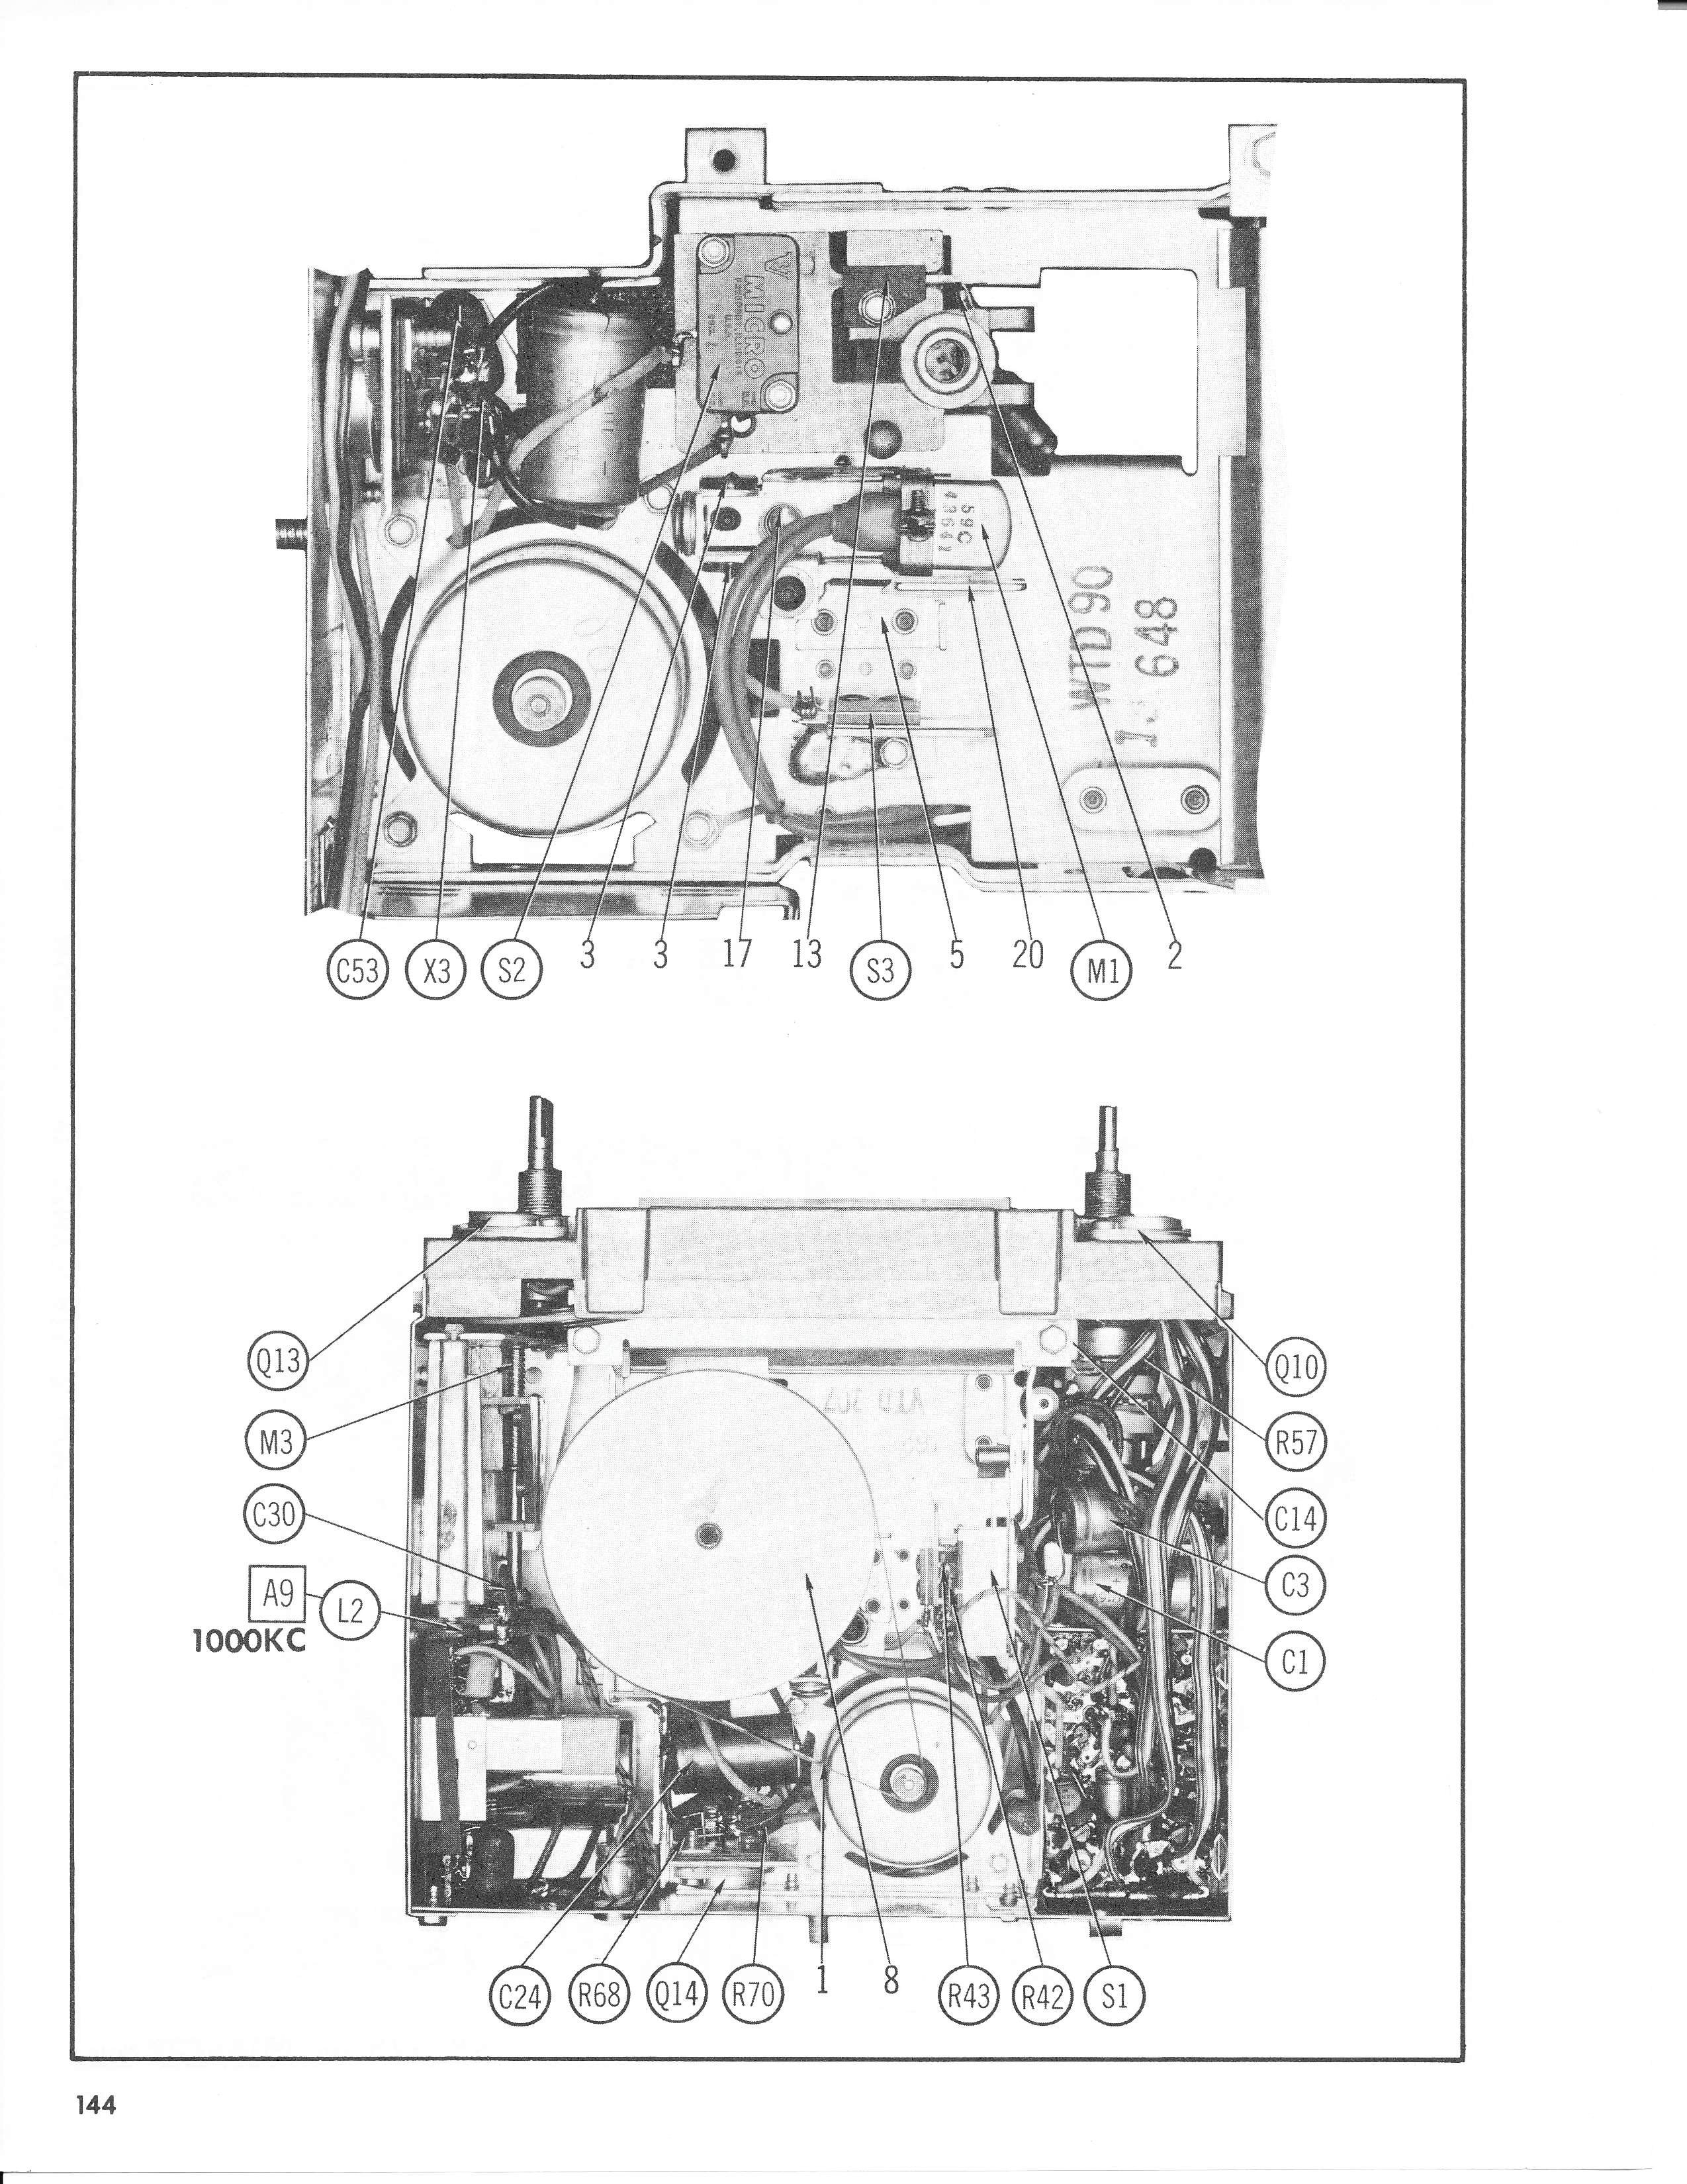 parts of a transit bus engine